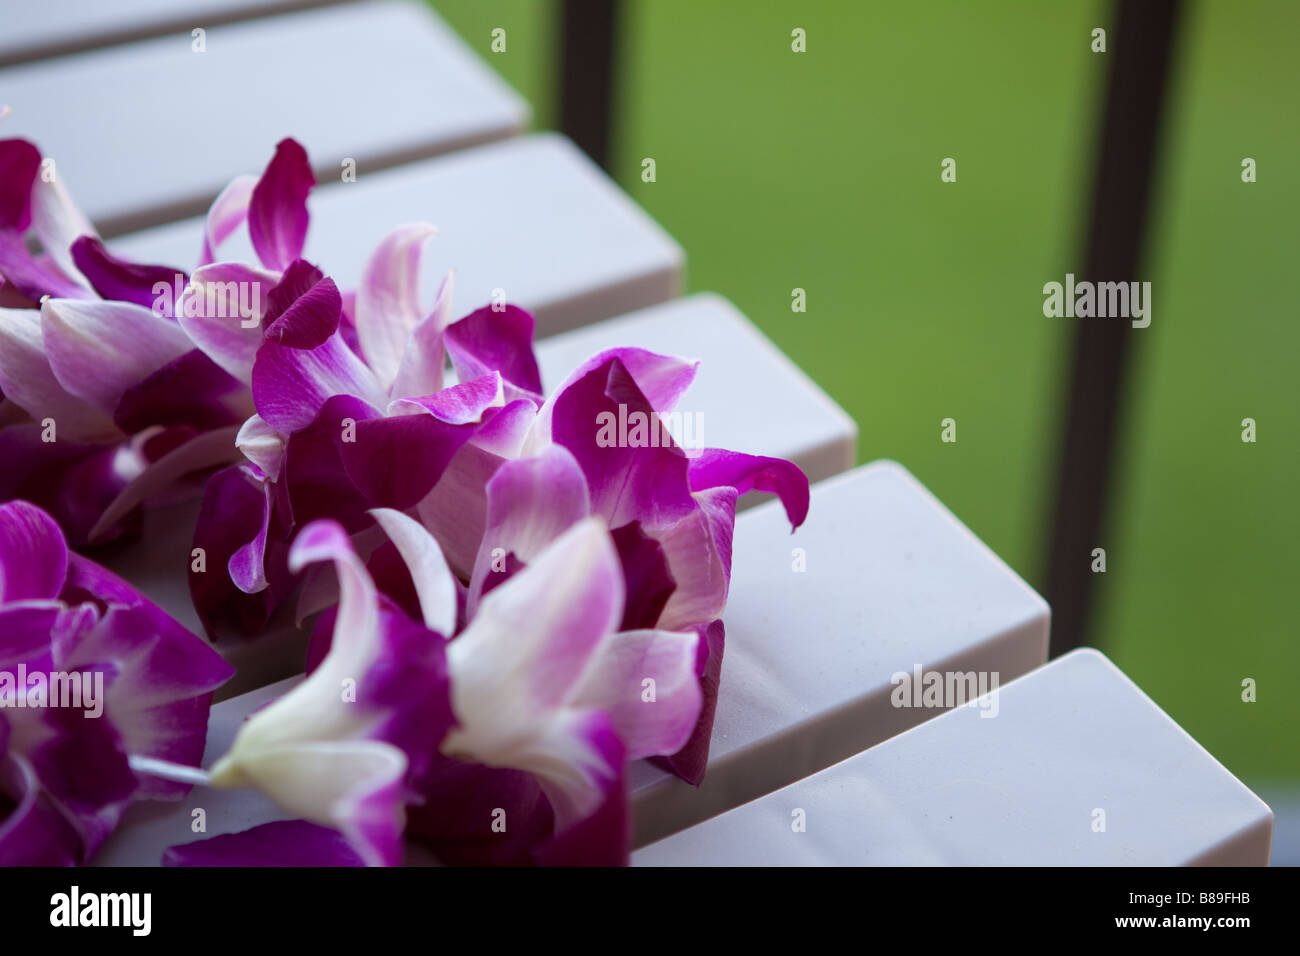 Hawaiian lei stock photos hawaiian lei stock images alamy hawaiian lei stock image izmirmasajfo